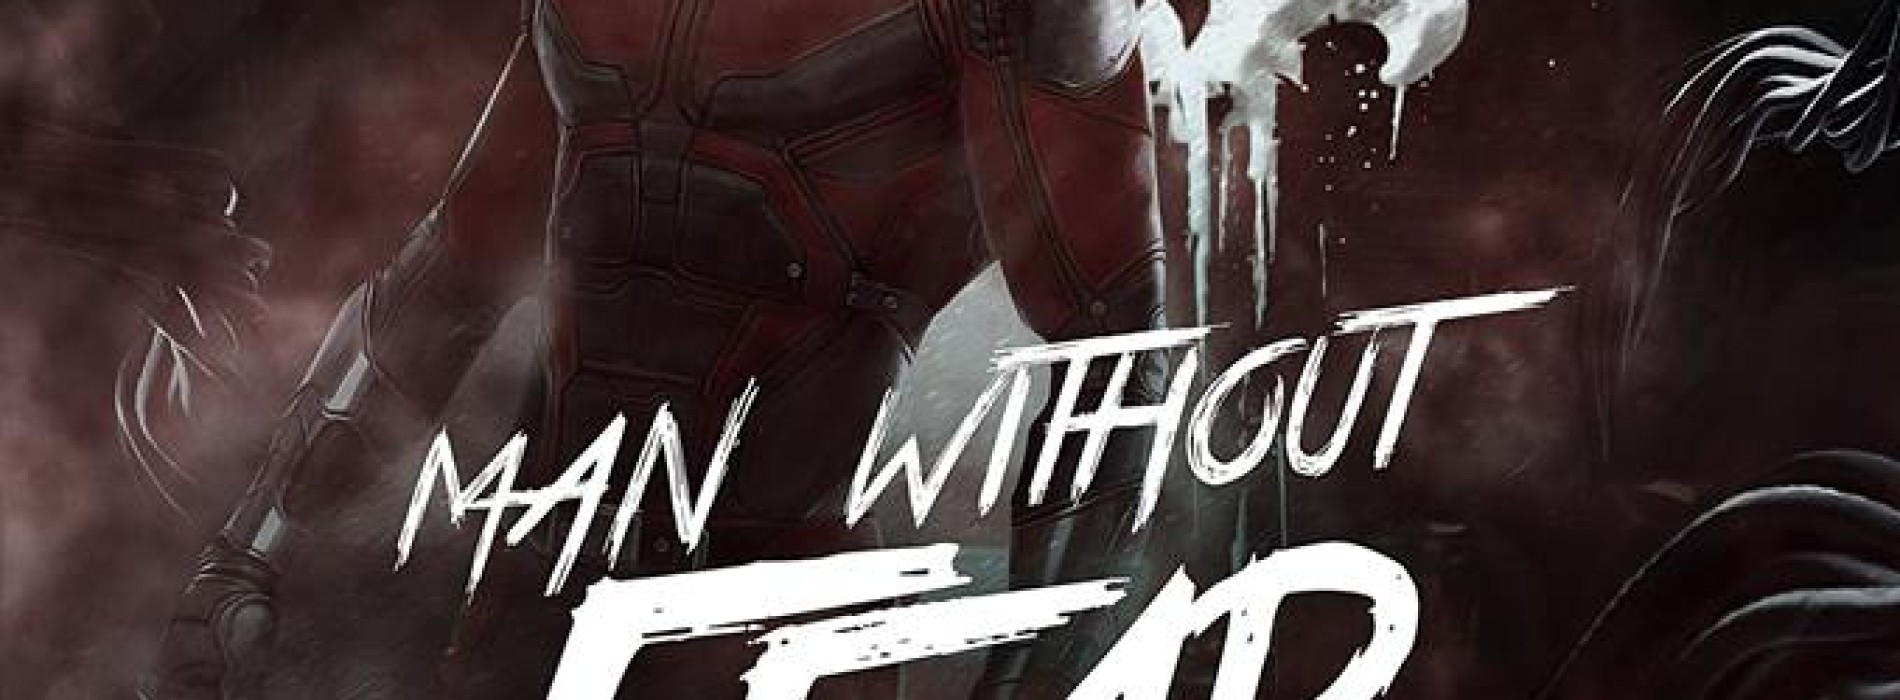 iClown Unveils Artwork For The Daredevil Remix With Shokstix